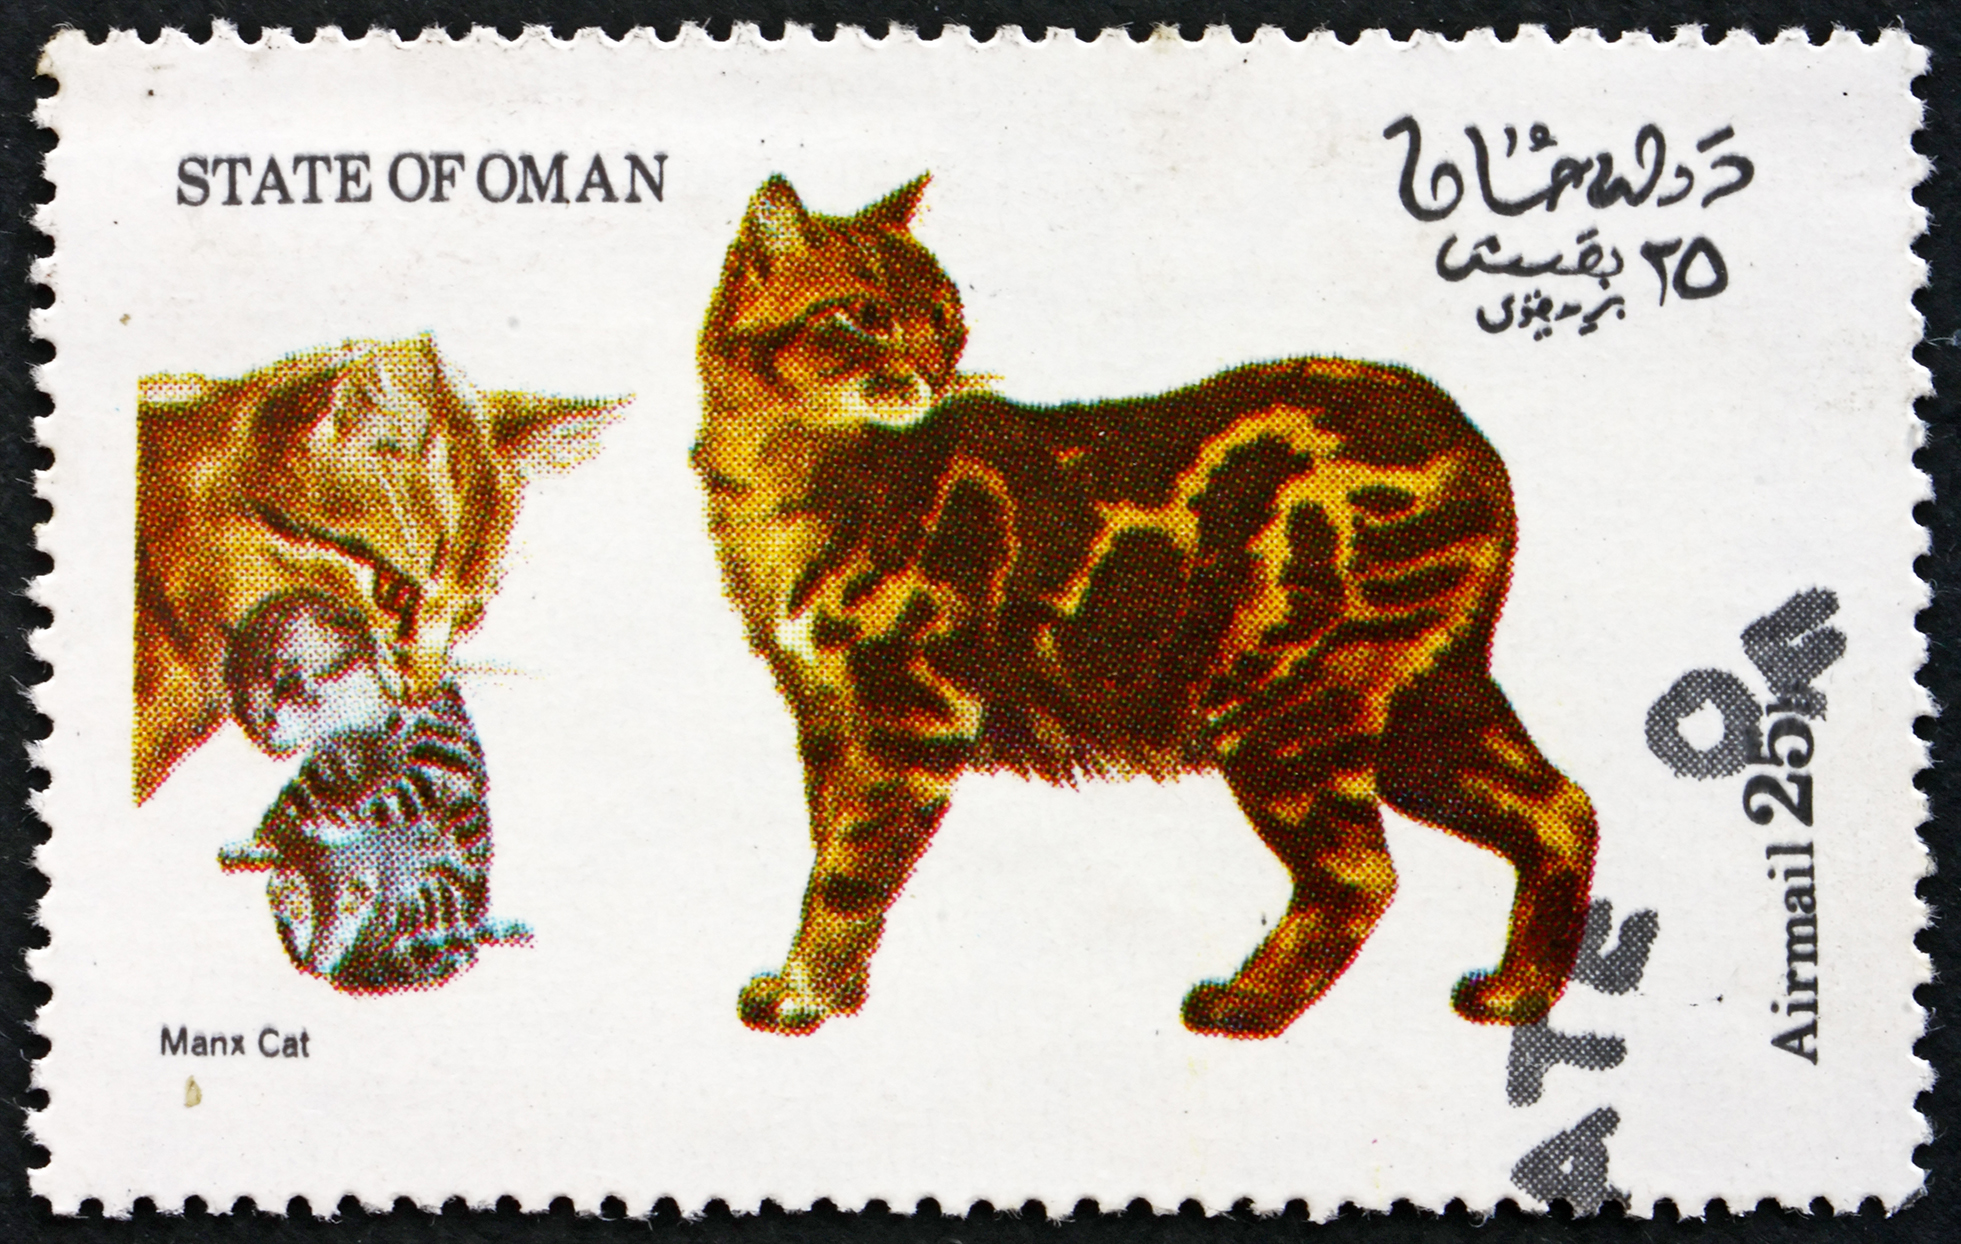 max cat vintage postage stamp drawing of three cats